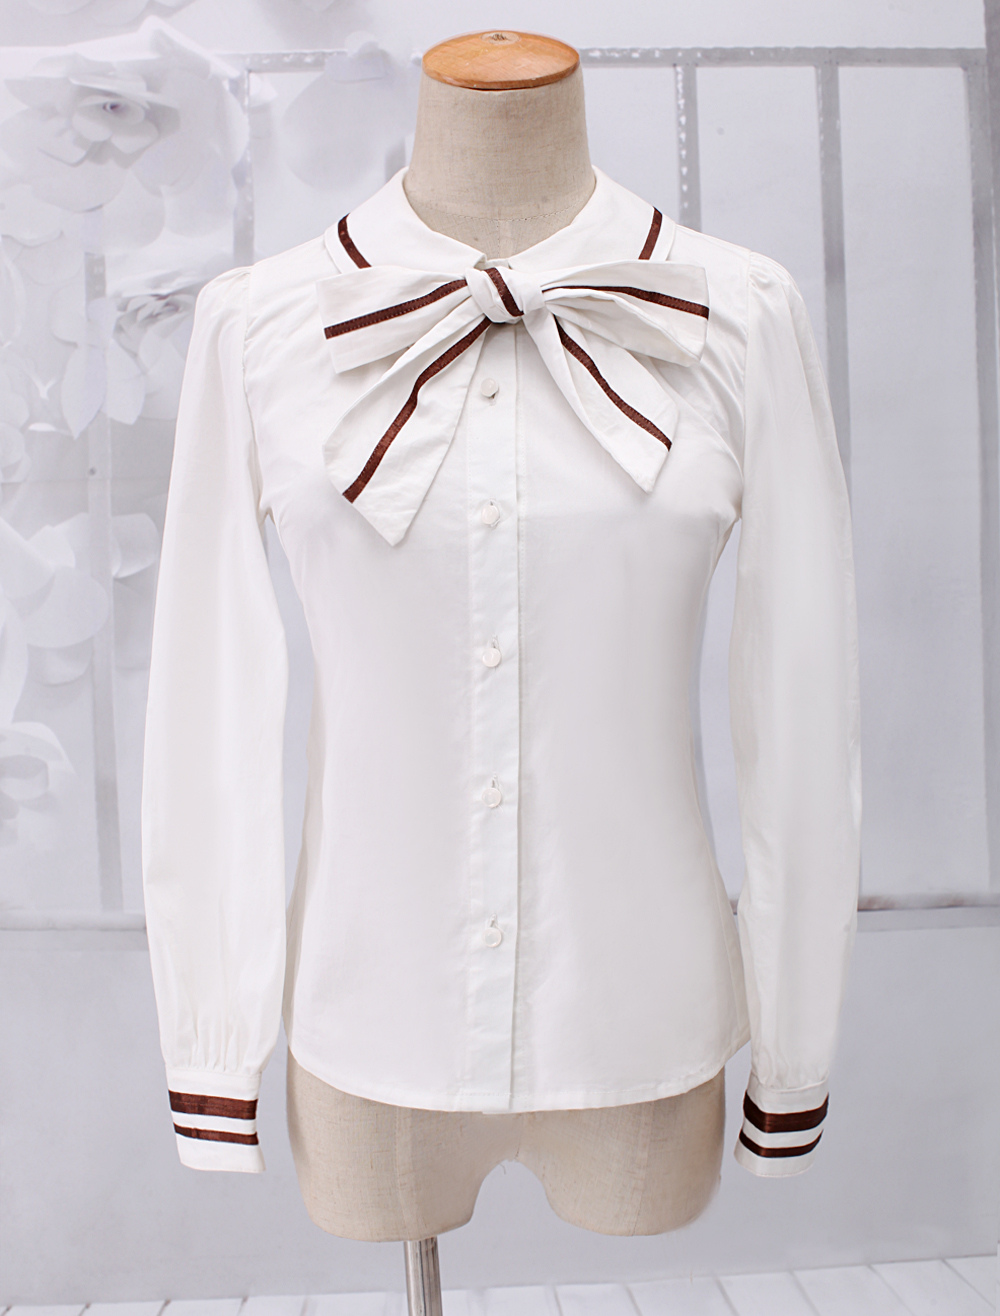 44117449b74 Lolitashow Dandy White Long Sleeves Cotton Lolita Blouse - Lolitashow.com